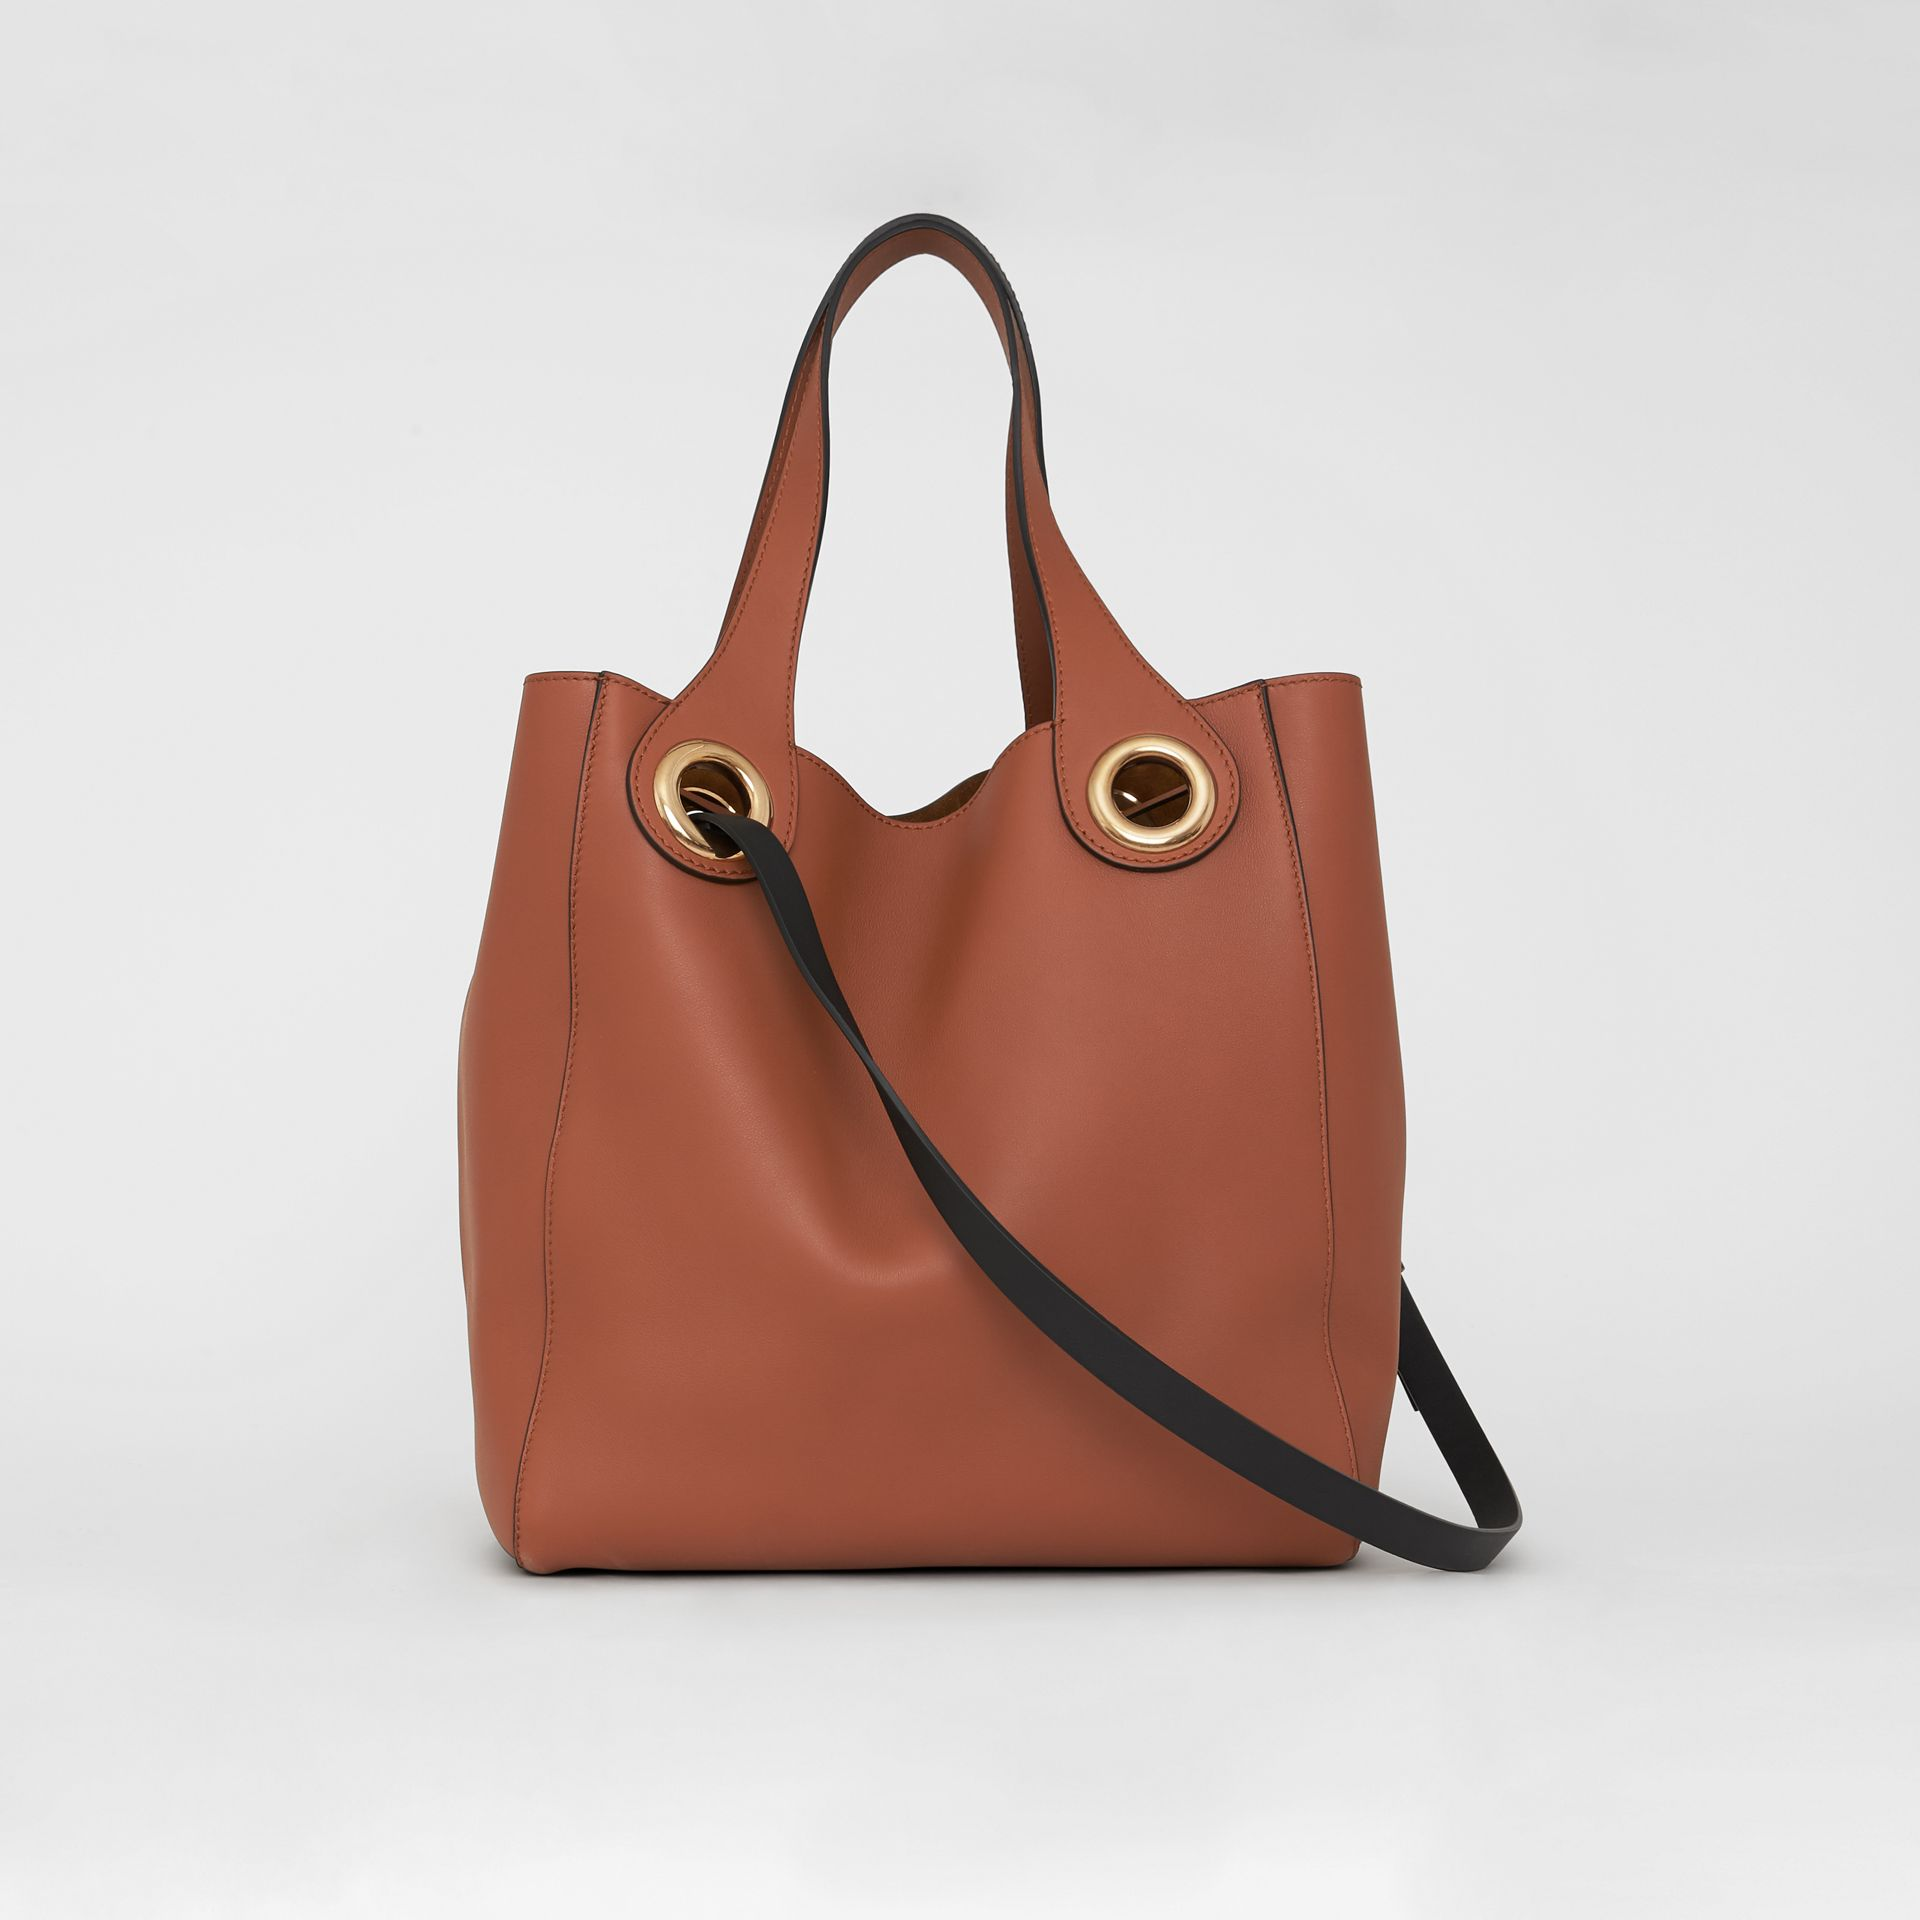 The Leather Grommet Detail Tote in Tan - Women | Burberry - gallery image 7